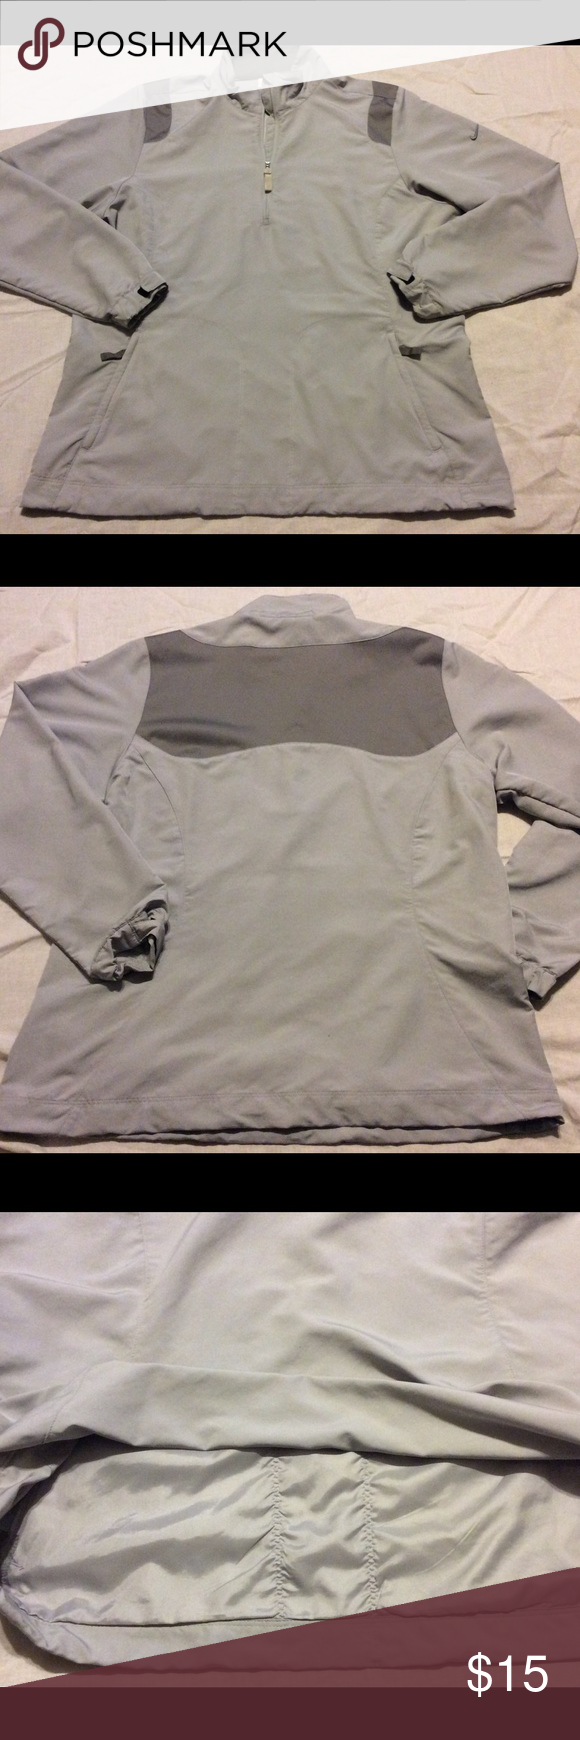 Men's Nike Dri-Fit Golf Shirt Gently worn, in very good condition, 1 flaw, tiny pulled thread on left front pocket, barely noticeable, will post extra pics upon request Nike Jackets & Coats Performance Jackets